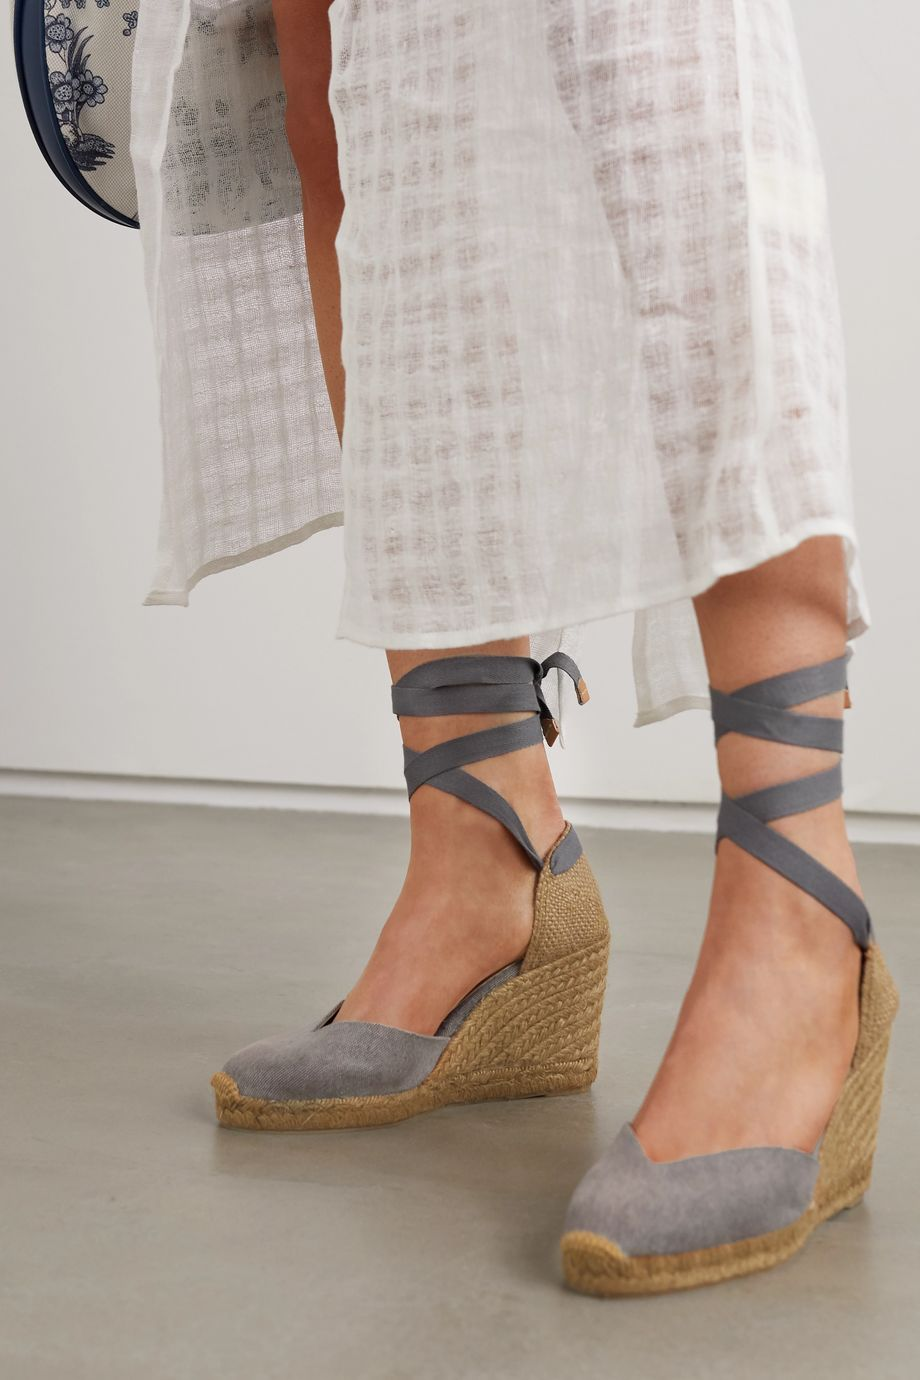 Castañer + NET SUSTAIN Chiara 80 canvas wedge espadrilles